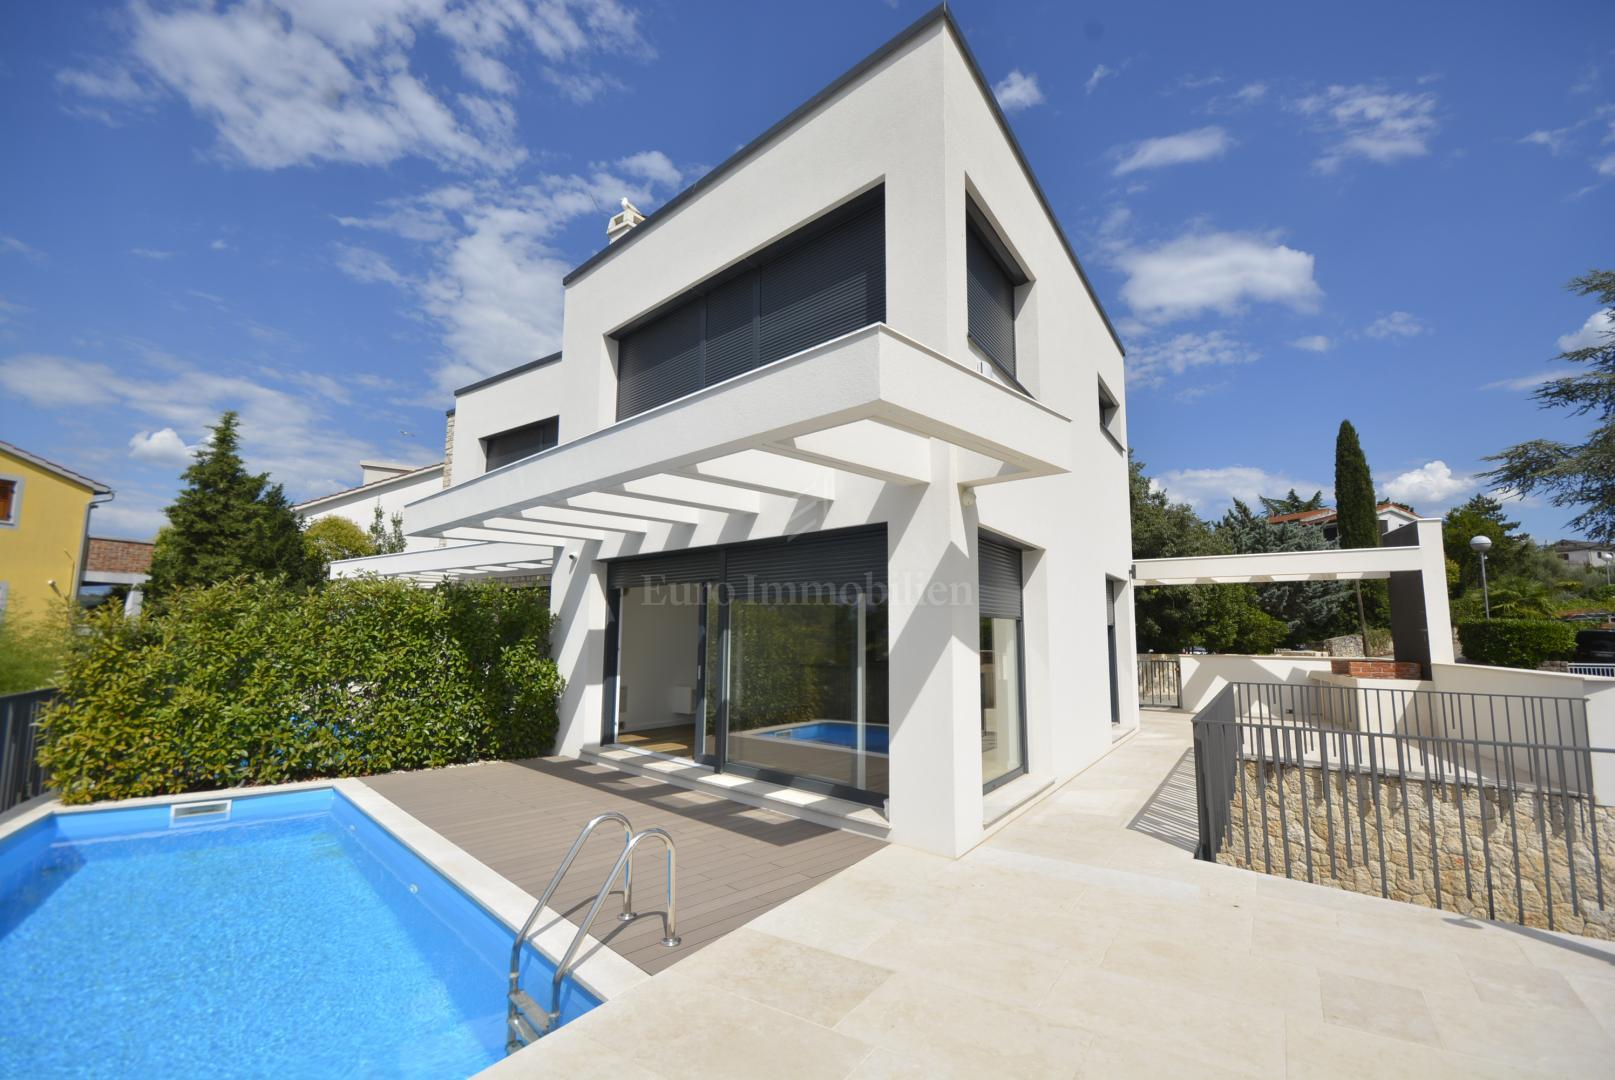 Modern Villa With Swimming Pool 200 From The Sea Haus